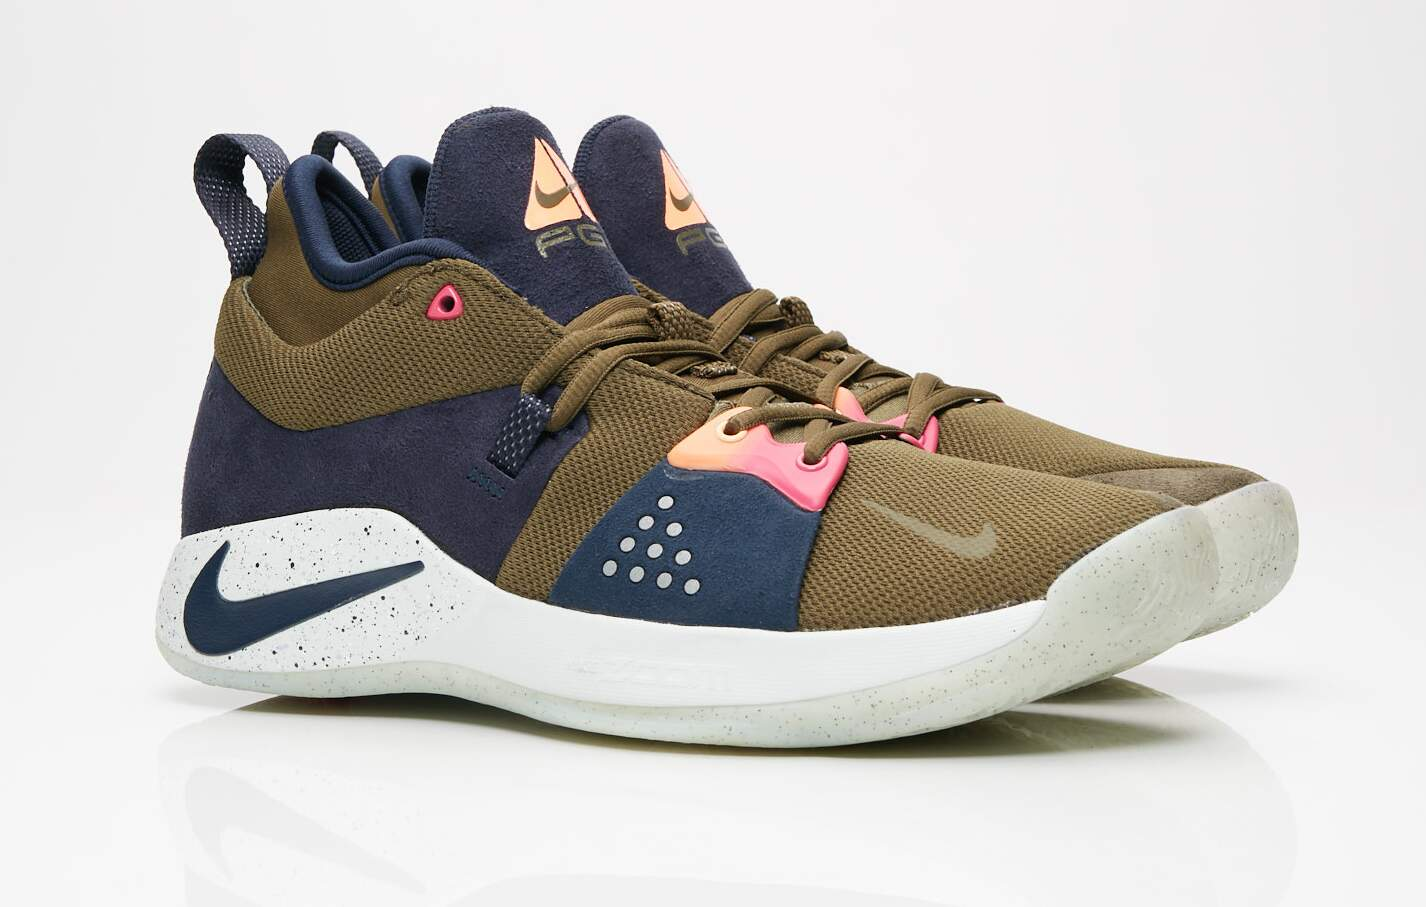 PG 2 Olive Canvas / Obsidian Masculino